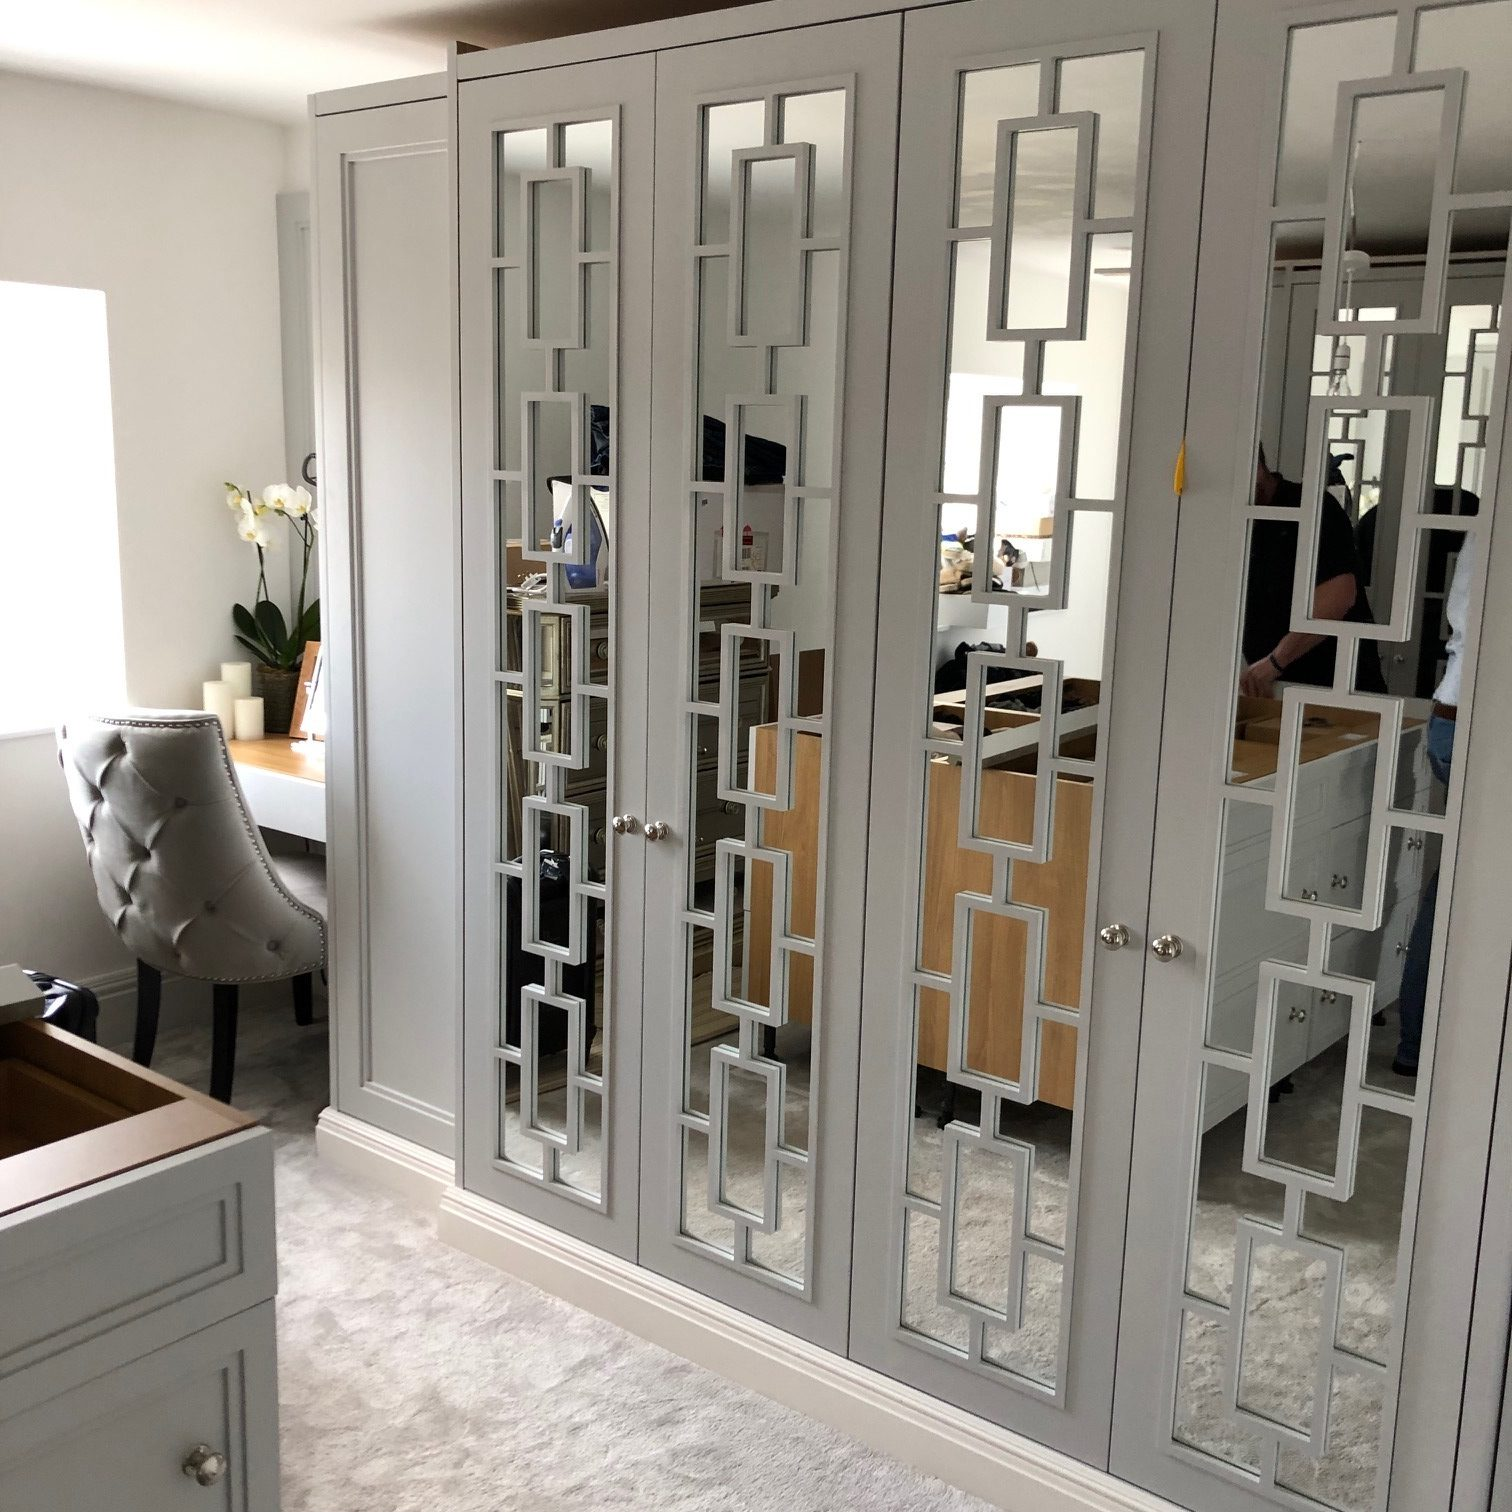 Just Wardrobe Doors design, build and deliver wardrobe doors with Mirrors to any location in the UK